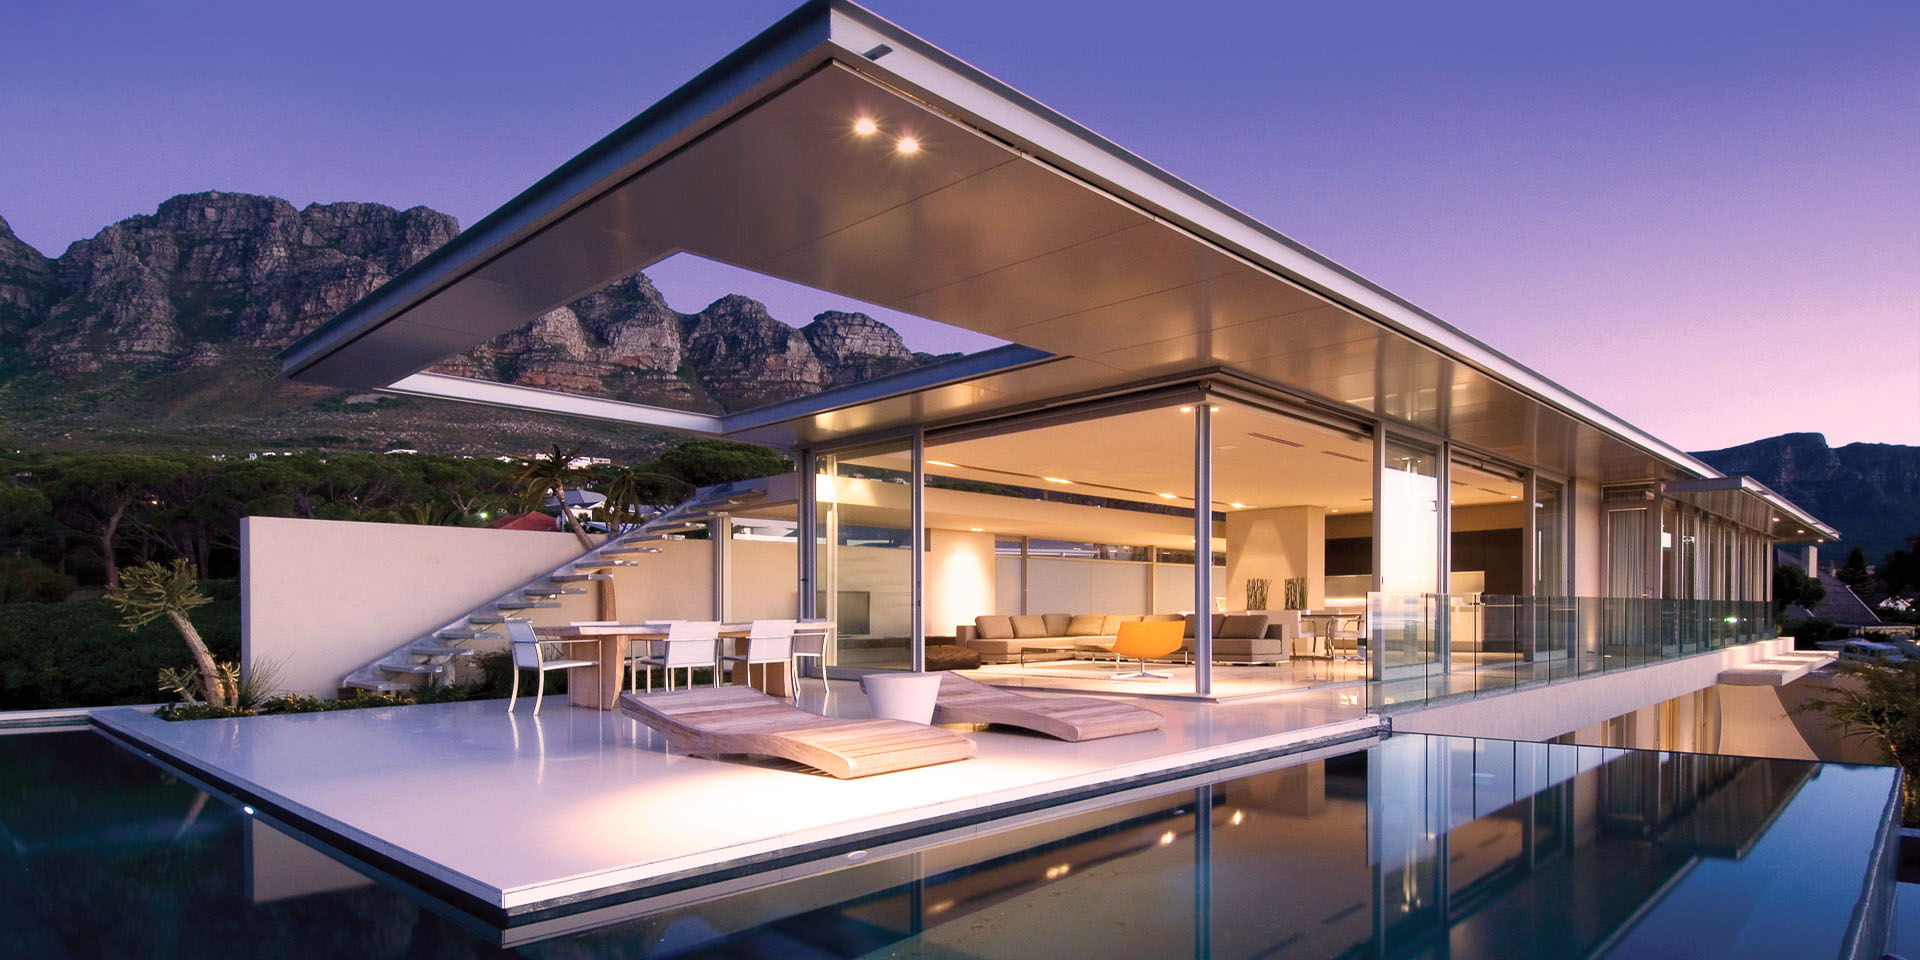 Bond House Villa Camps Bay Cape Town by Stefan Antoni